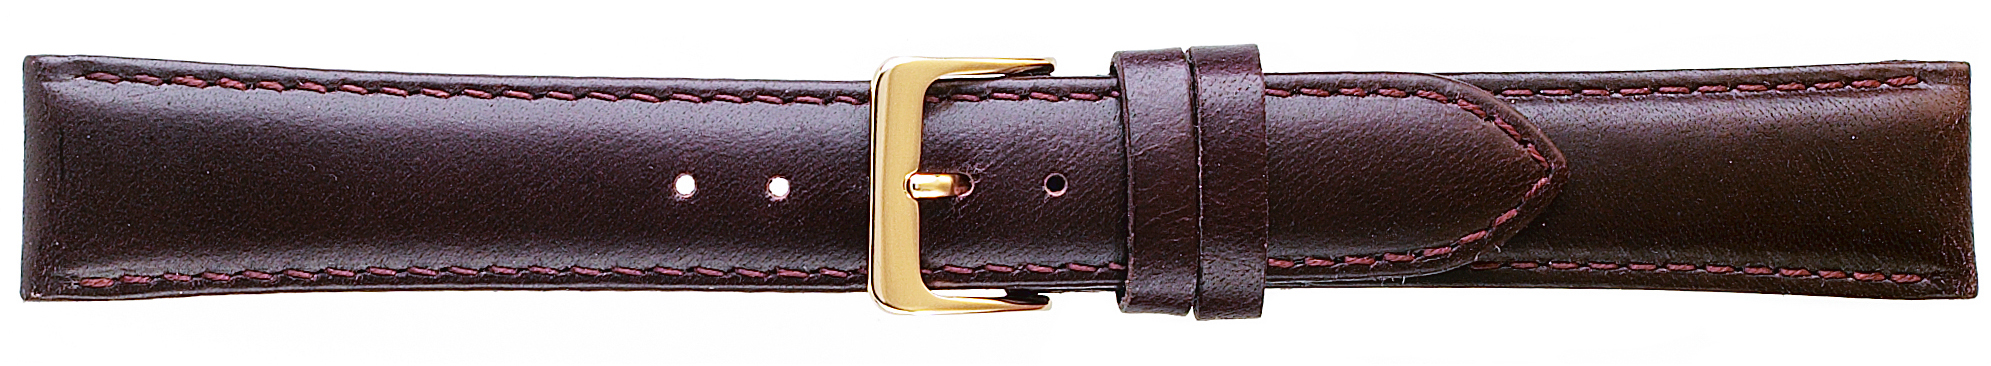 14MM Classic Oilskin Brown Leather Strap -0